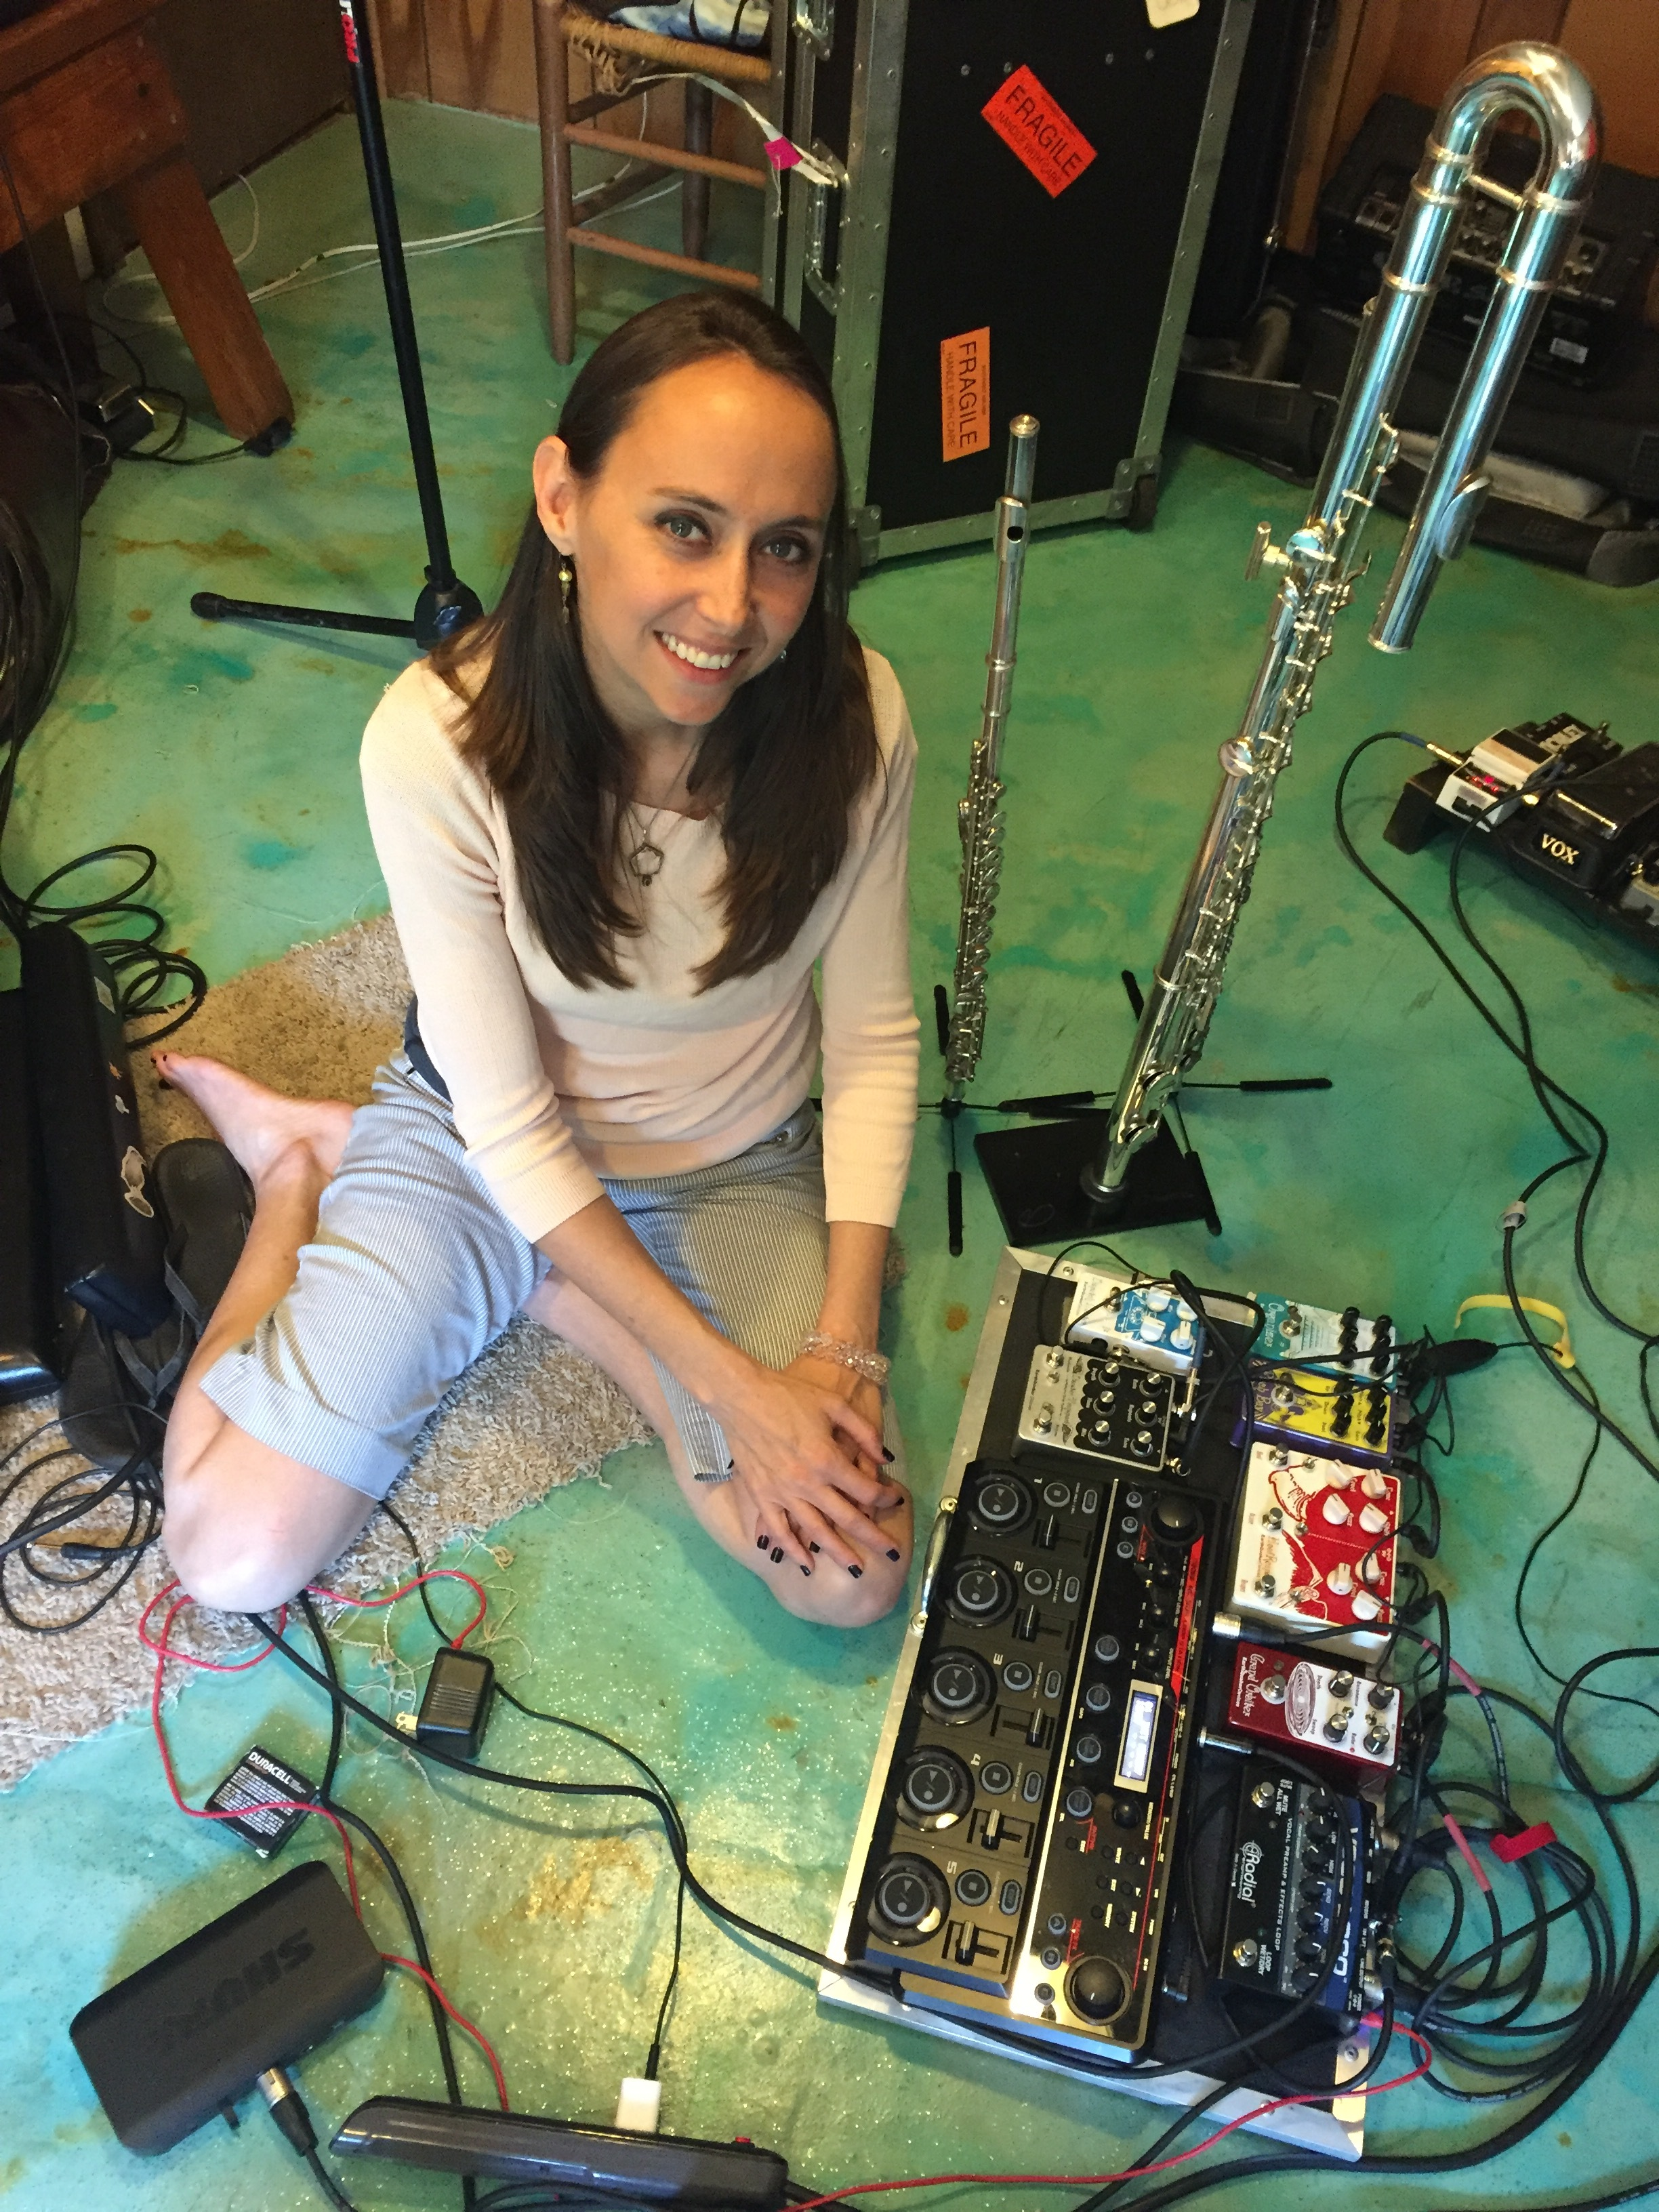 The Queen and her Royal Office, Sarah Jane Hargis at her pedal board.